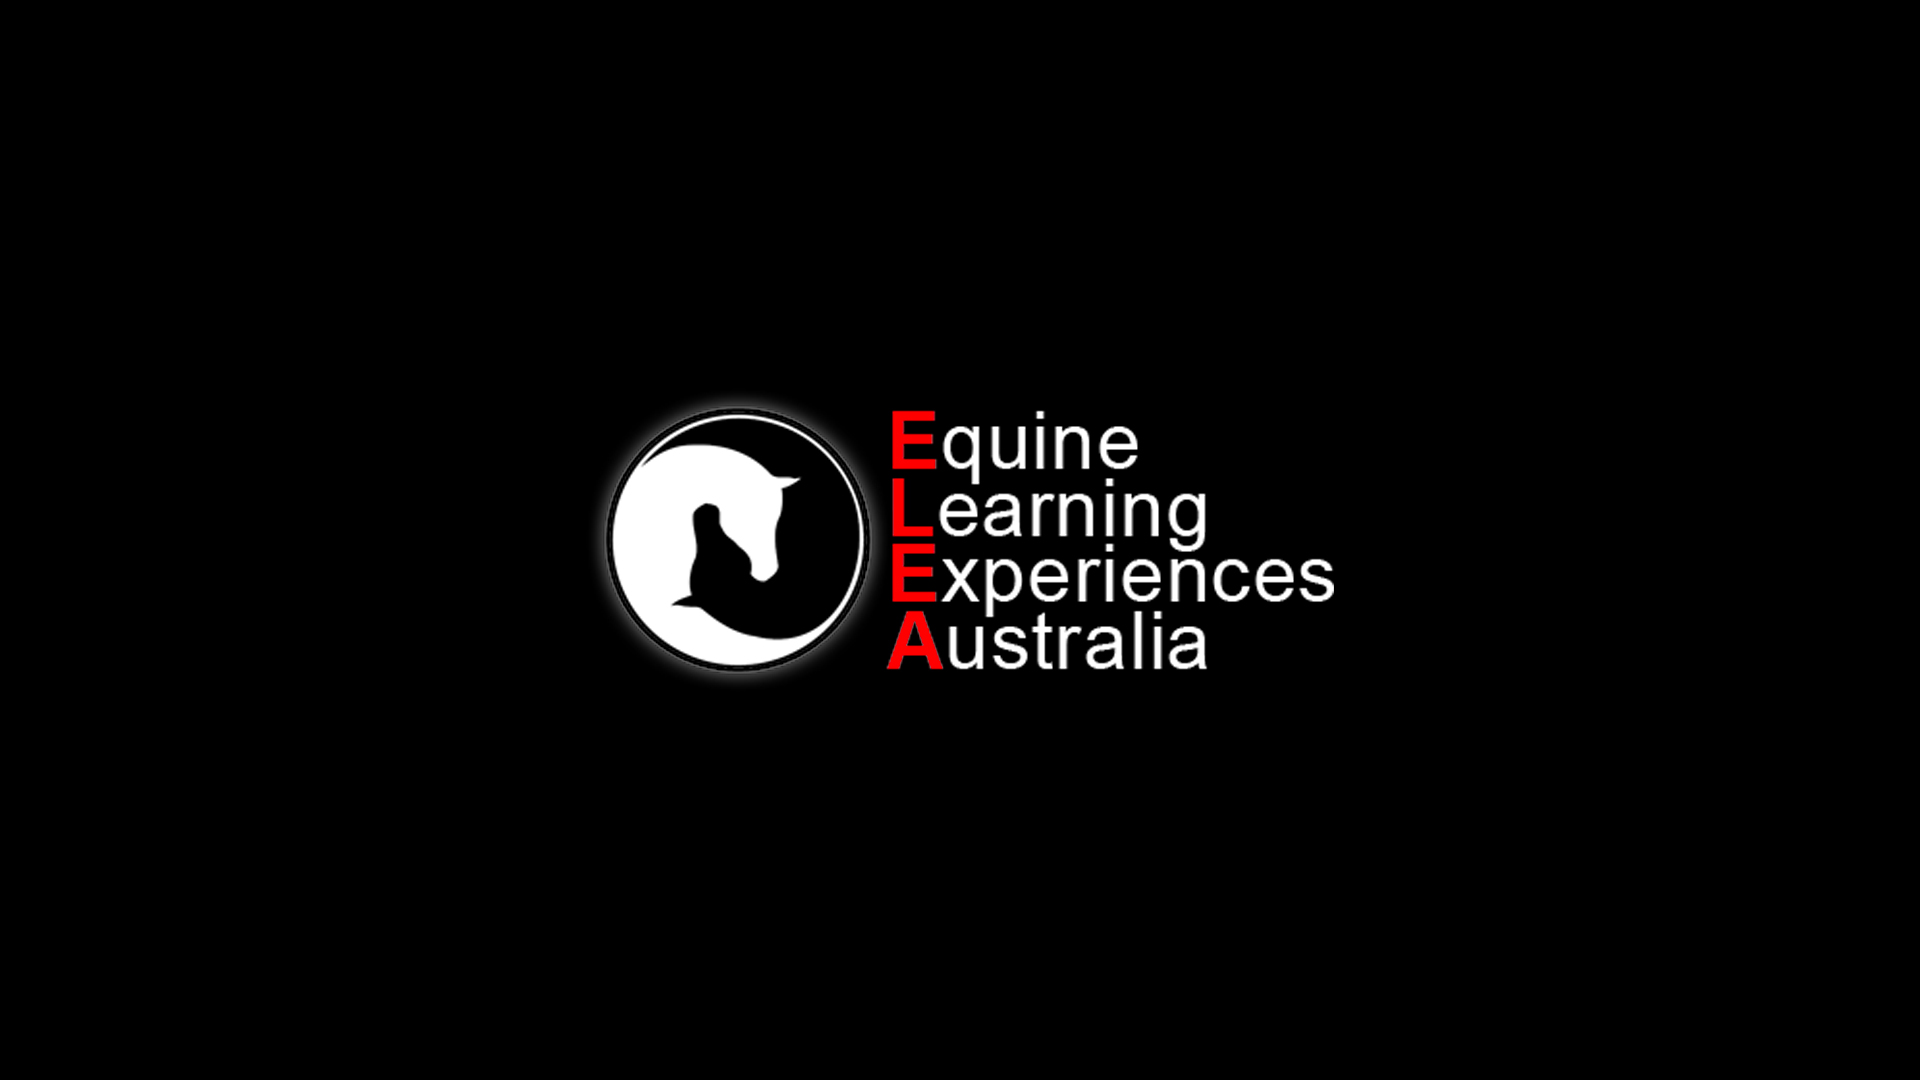 Equine Learning Experiences Australia   Case Study